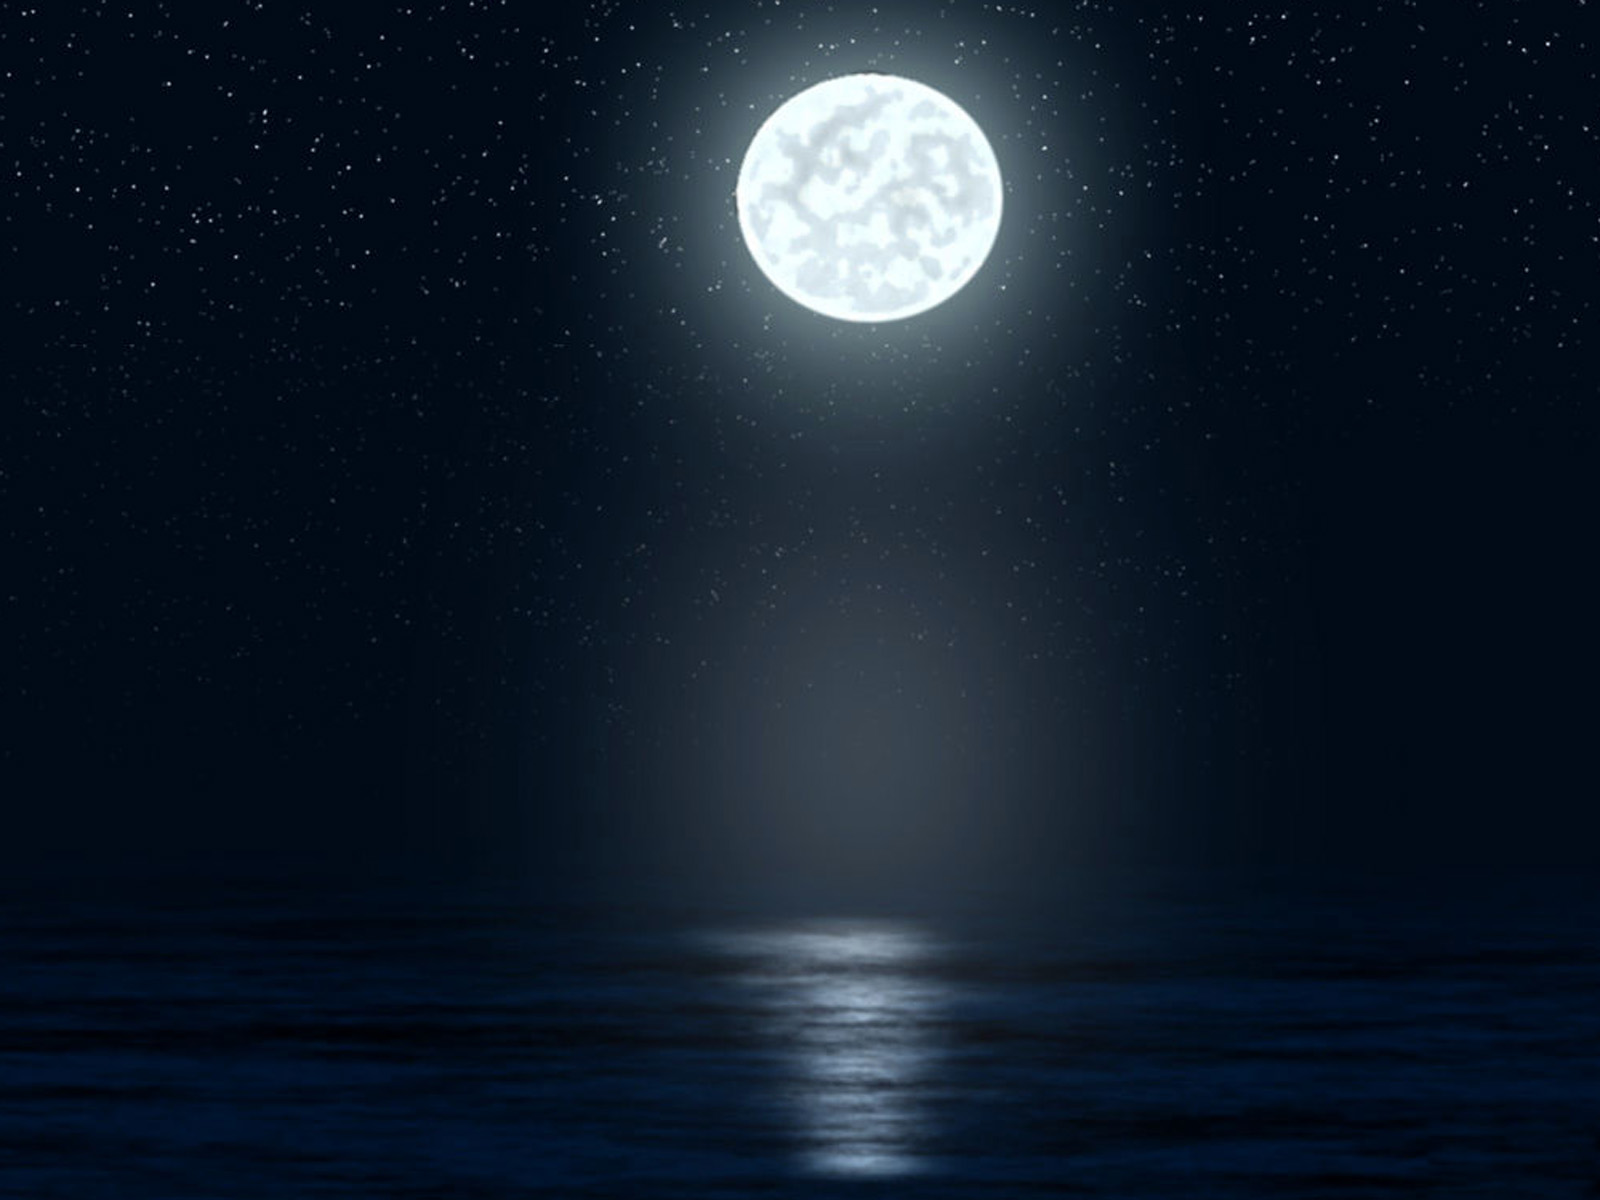 a gift of moonlight wallpaper - photo #31